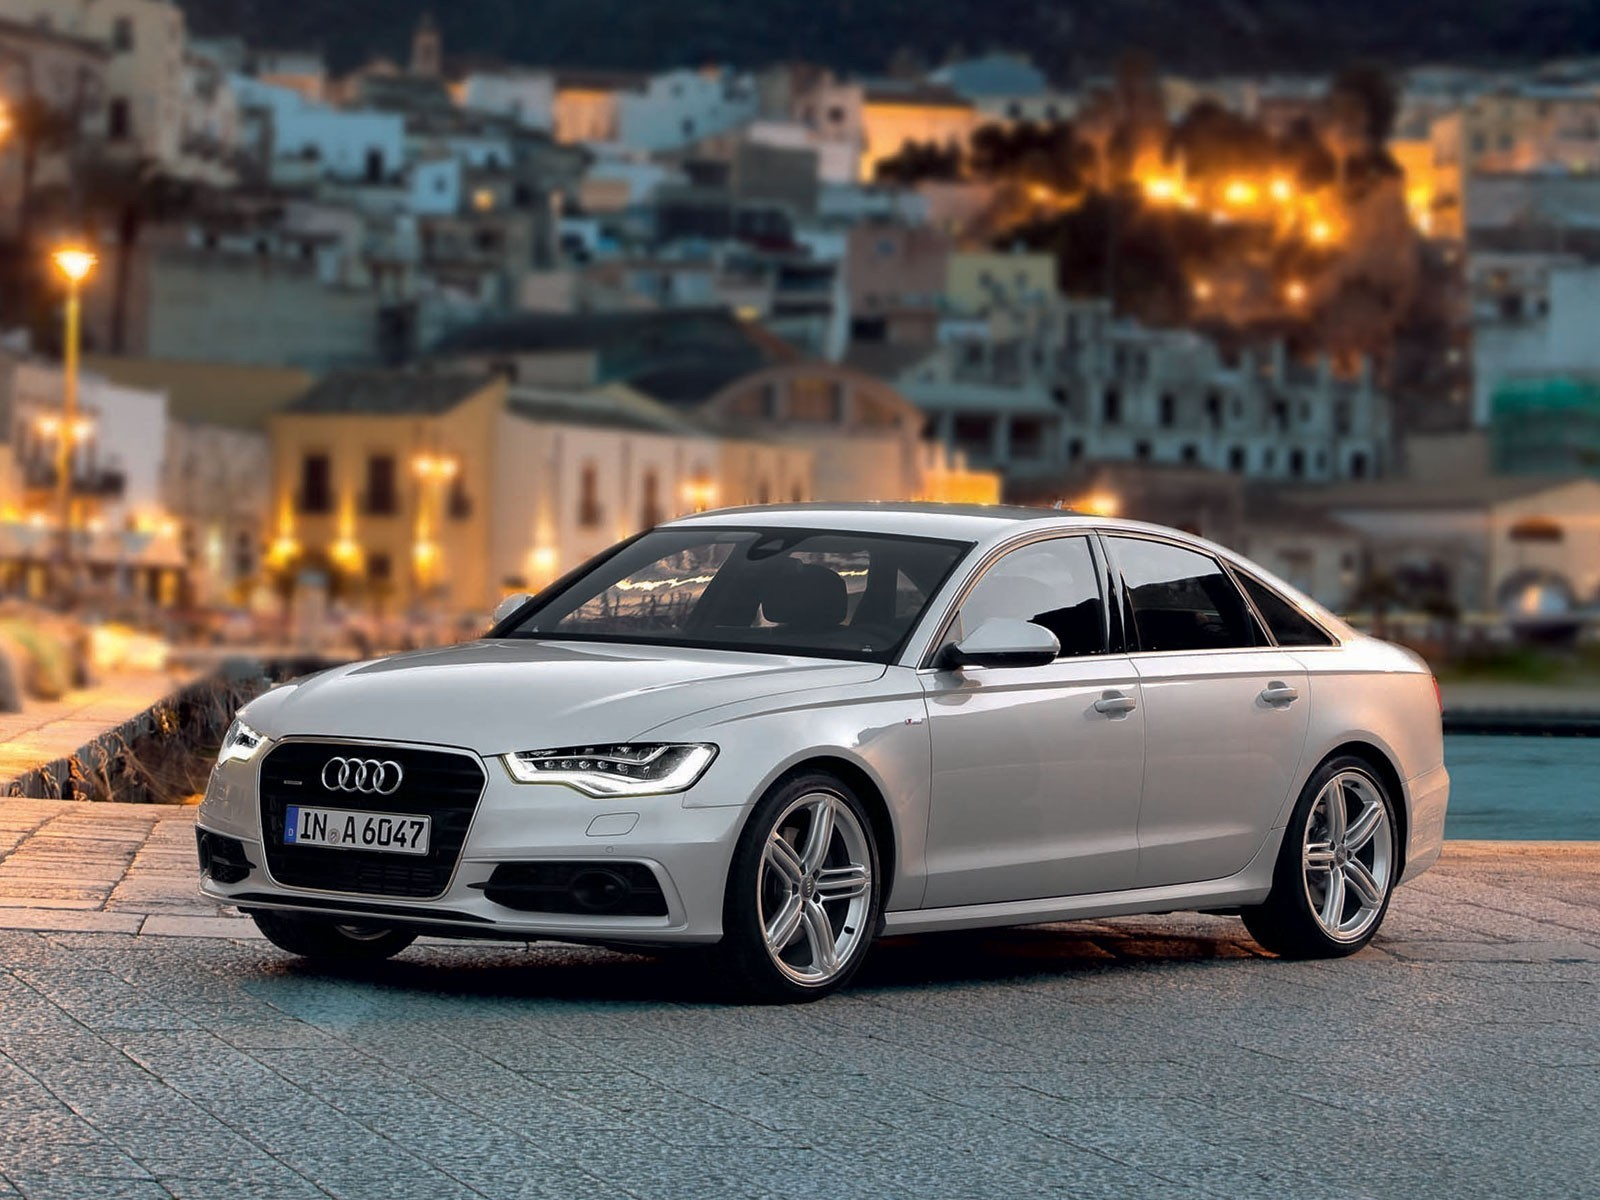 cars Audi Audi A6 HD Wallpaper